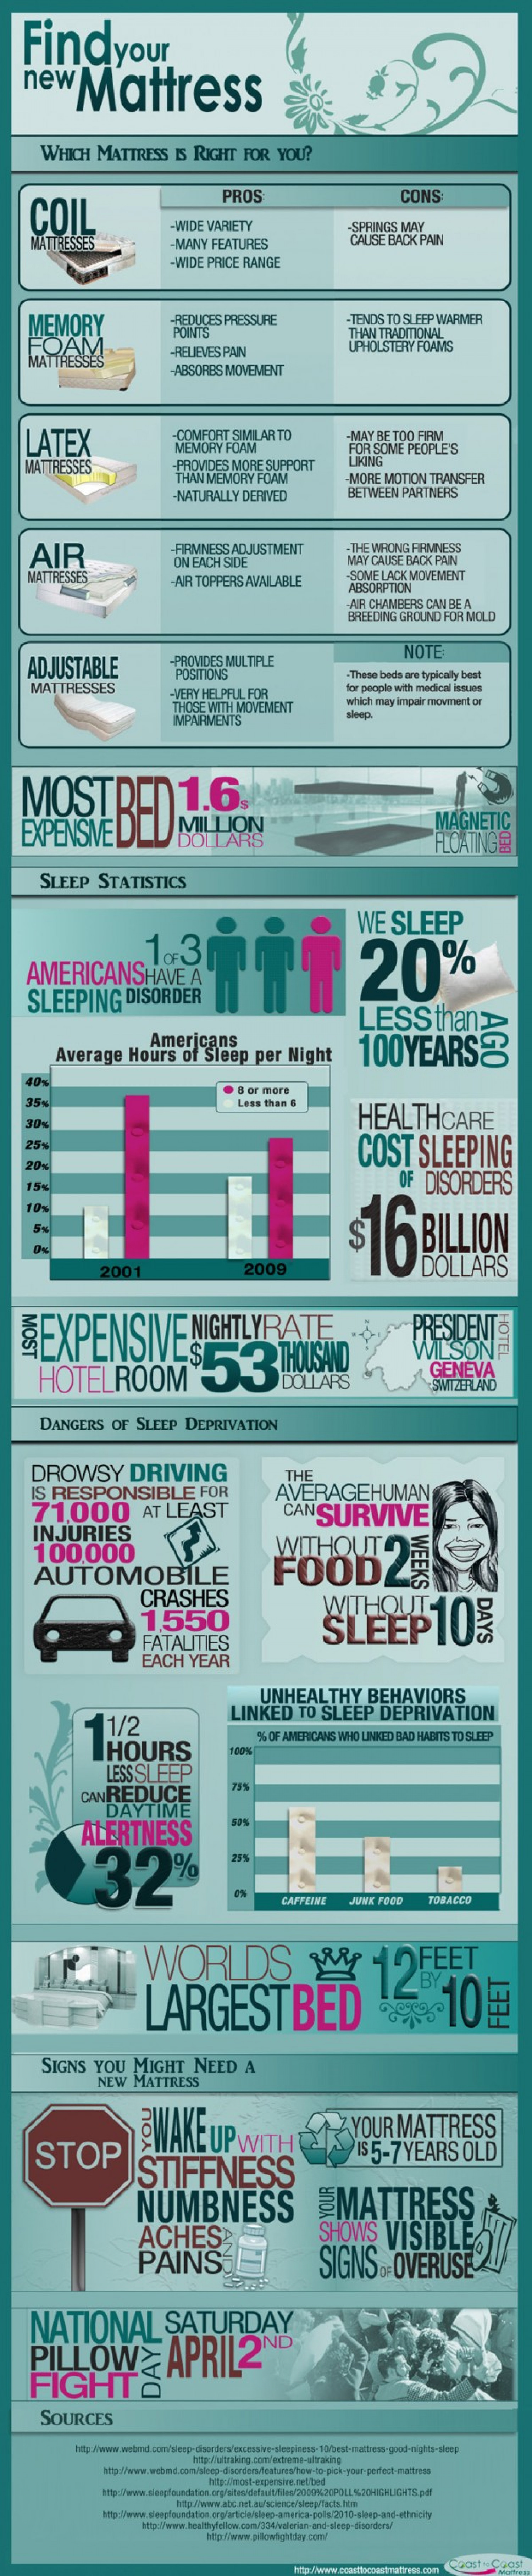 Find your New Mattress  Infographic